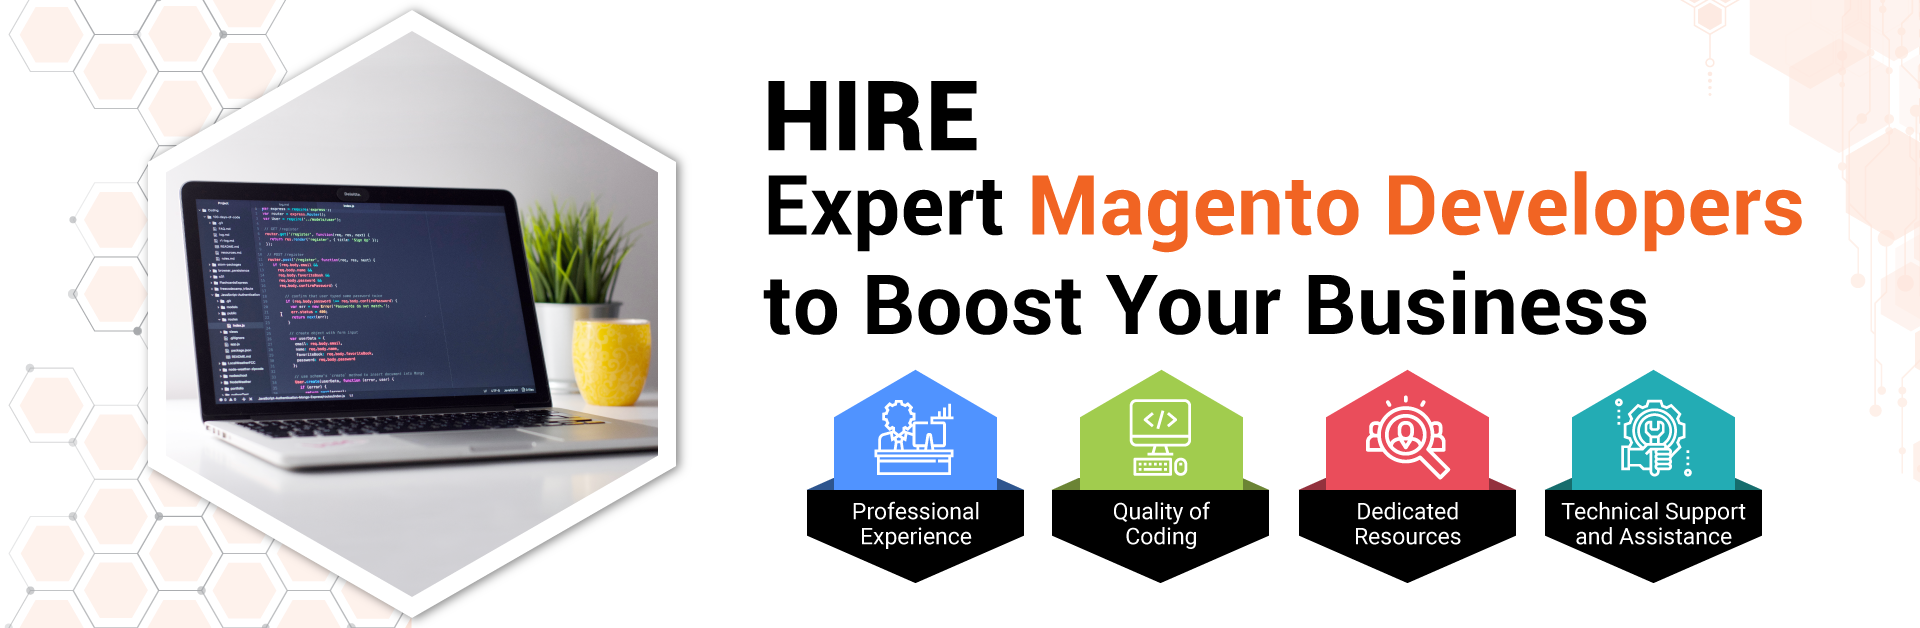 Hire Expert Magento Developers to Boost Your Business